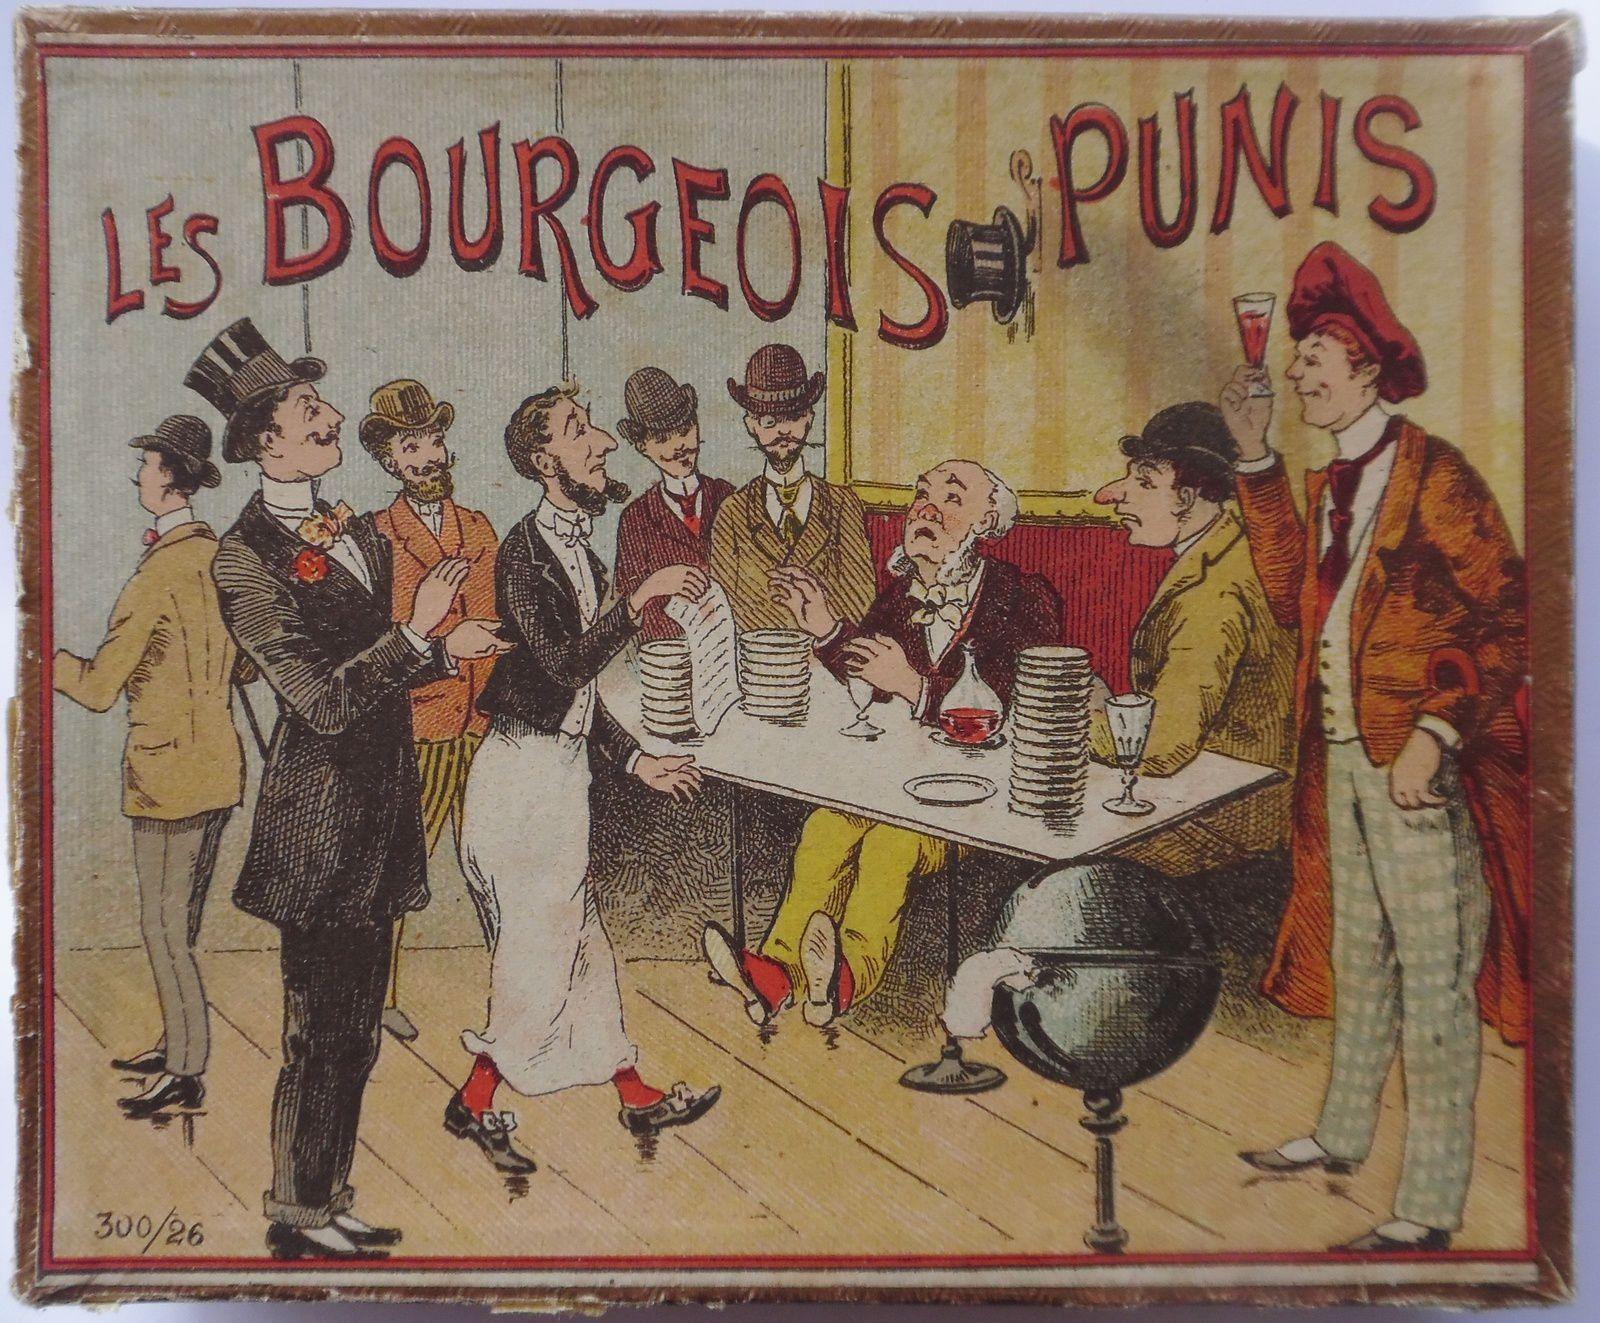 les bourgeois punis  300-26